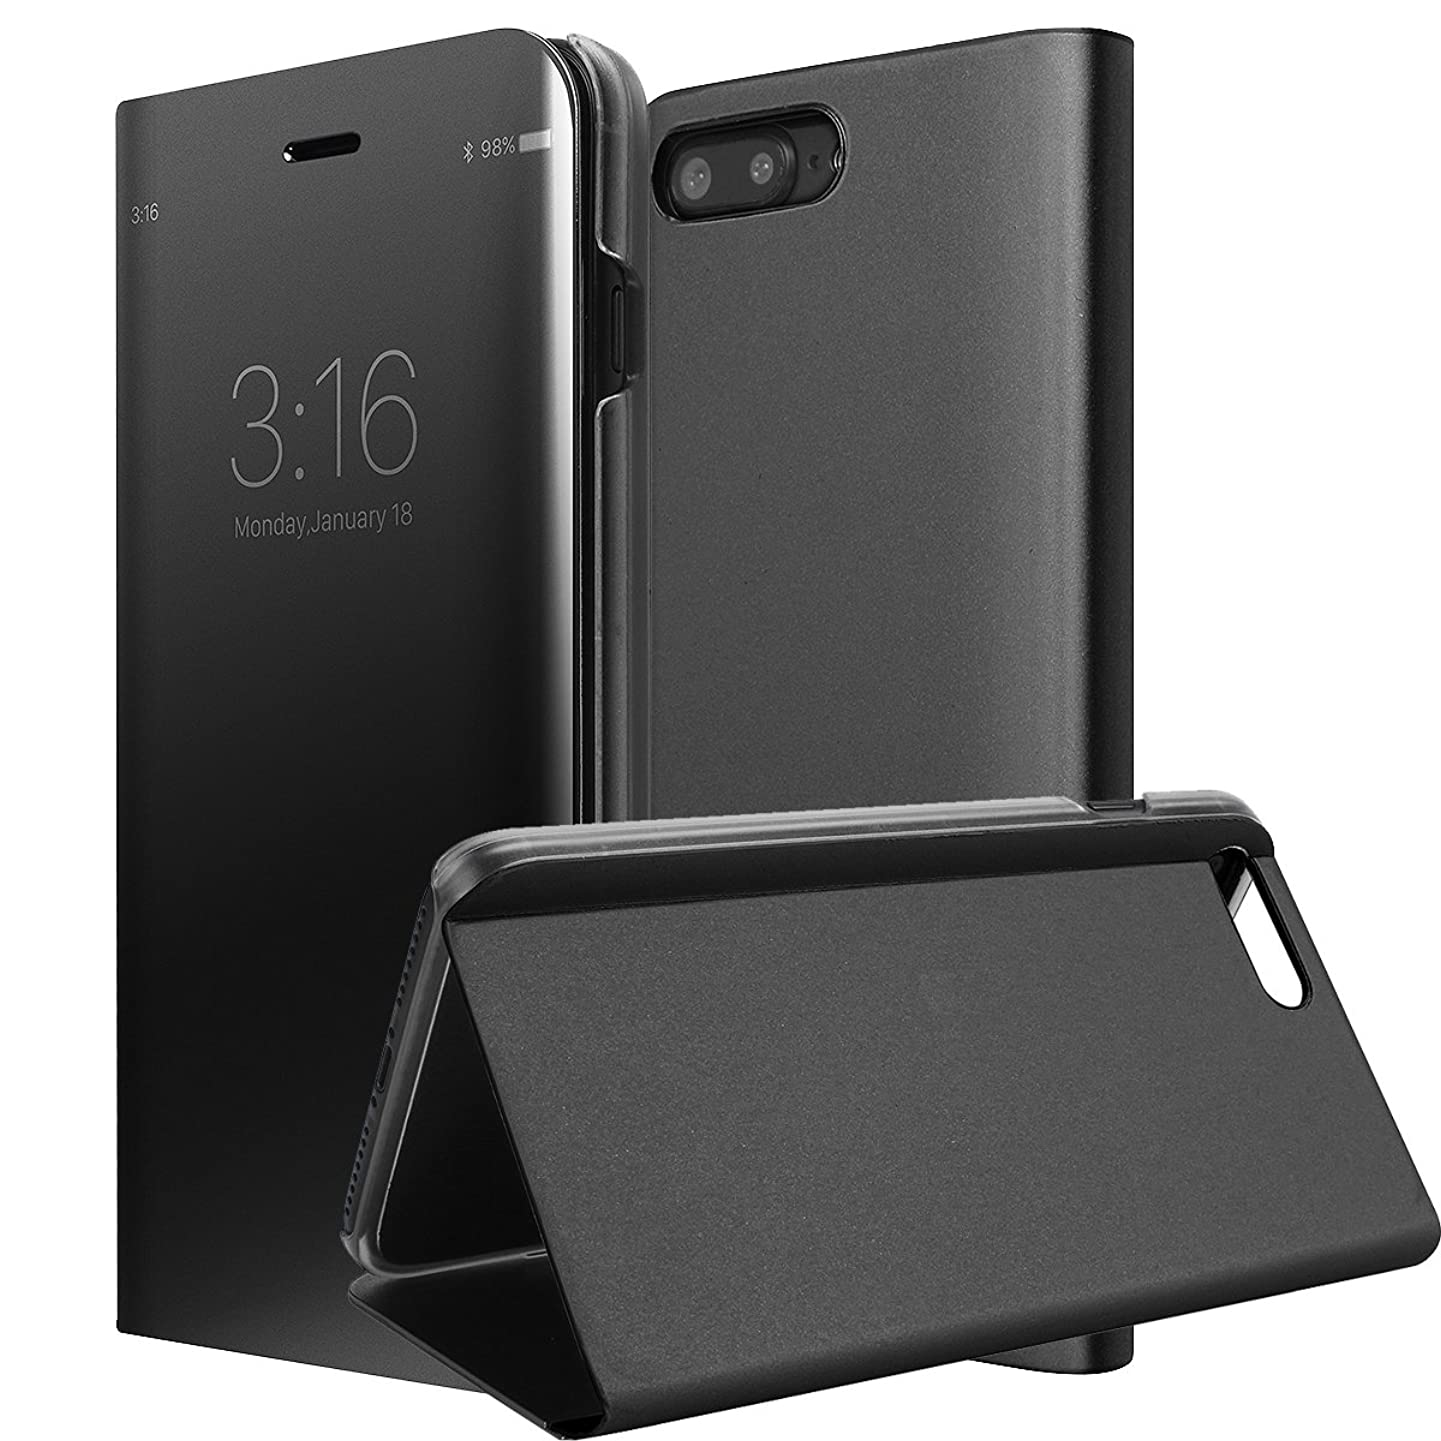 iPhone 7 Plus/8 Plus Case, AICase Luxury Translucent View Window Front Cover Mirror Screen Flip Electroplate Plating Stand Full Body Protective Case for Apple iPhone 7 Plus/8 Plus (Black)